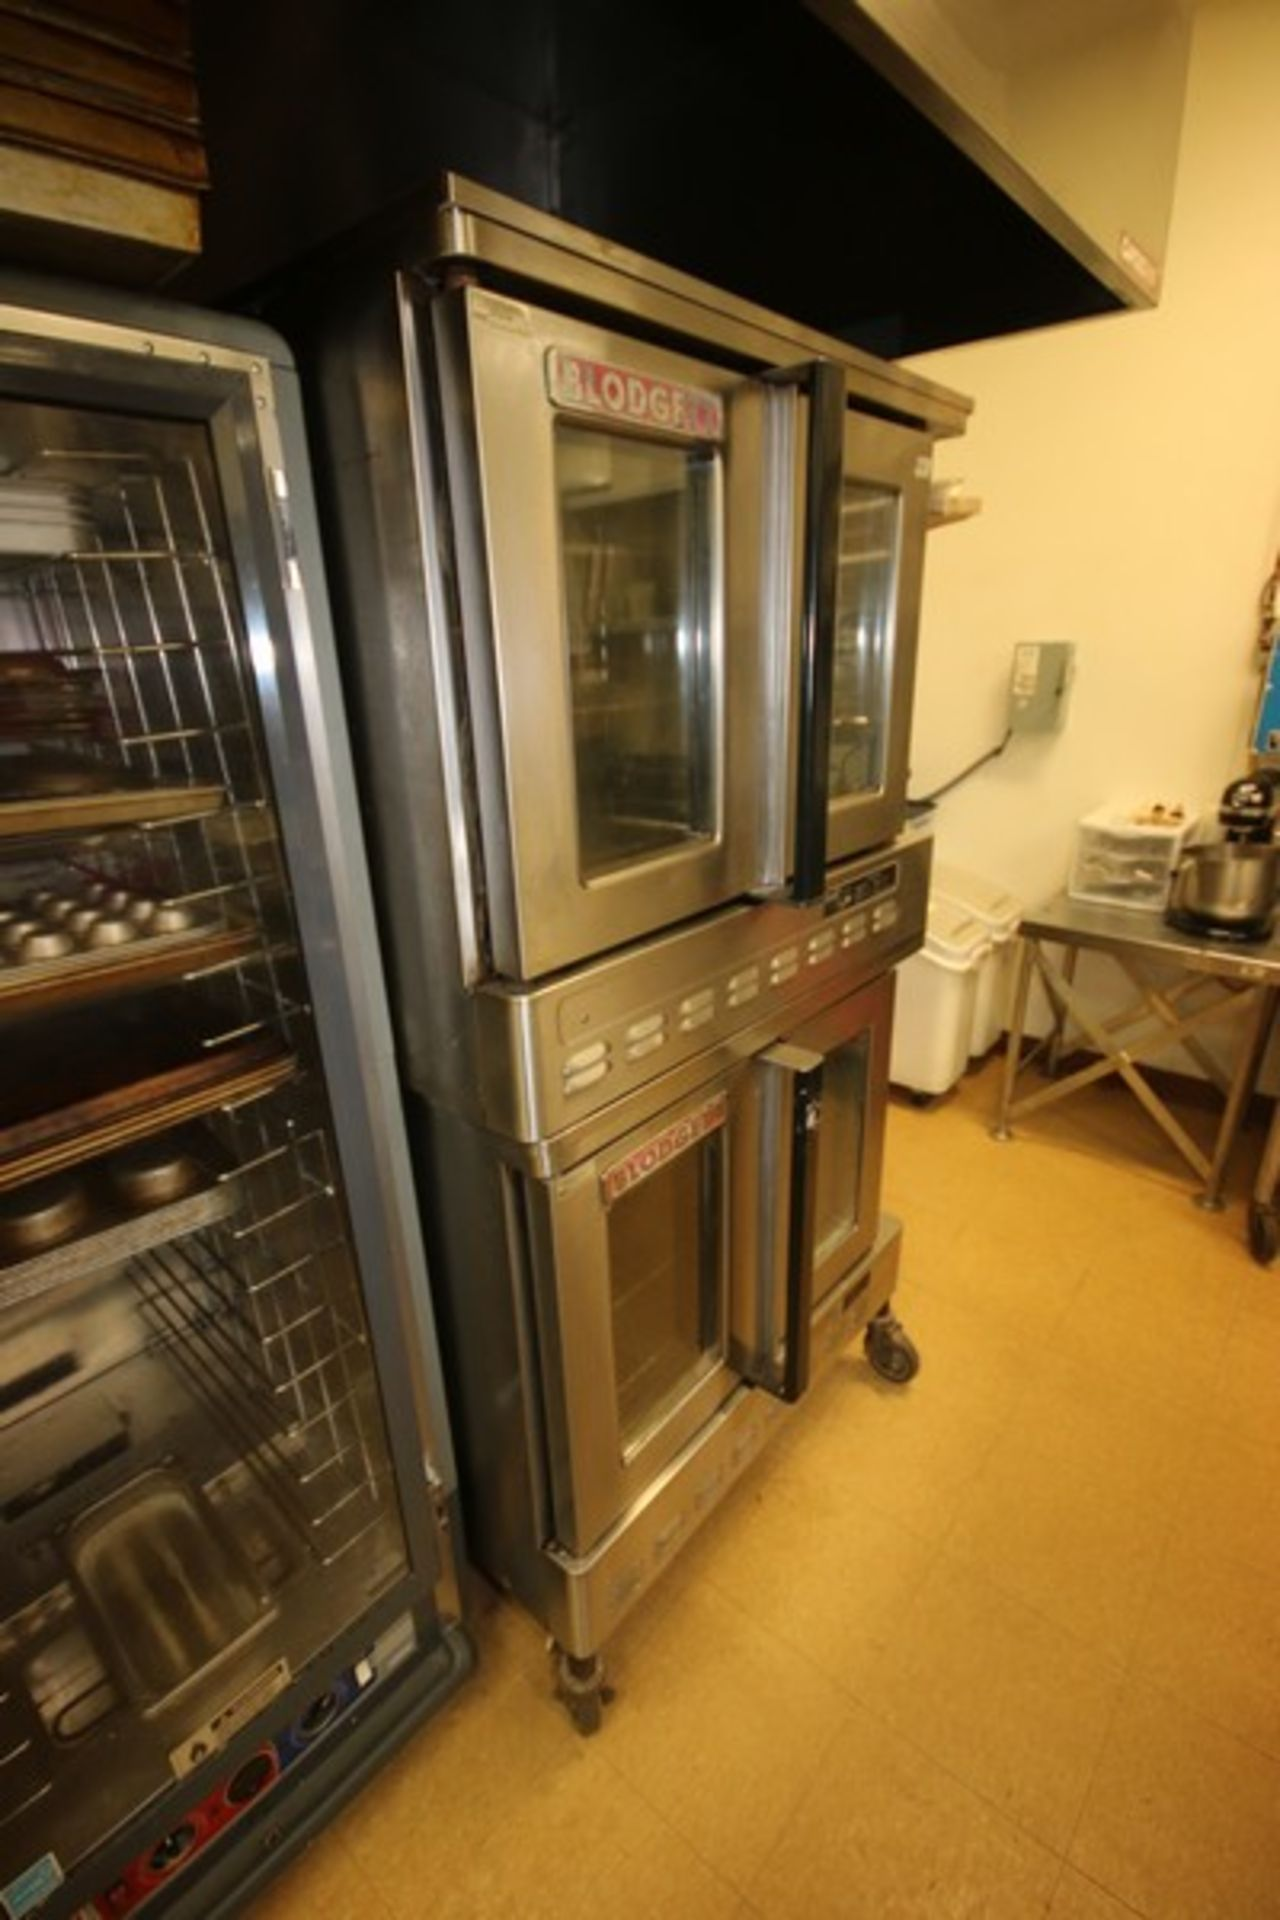 Blodgett Double Deck S/S Oven, with (3) Internal Wire Shelves In Each Compartment, Mounted on - Image 2 of 5